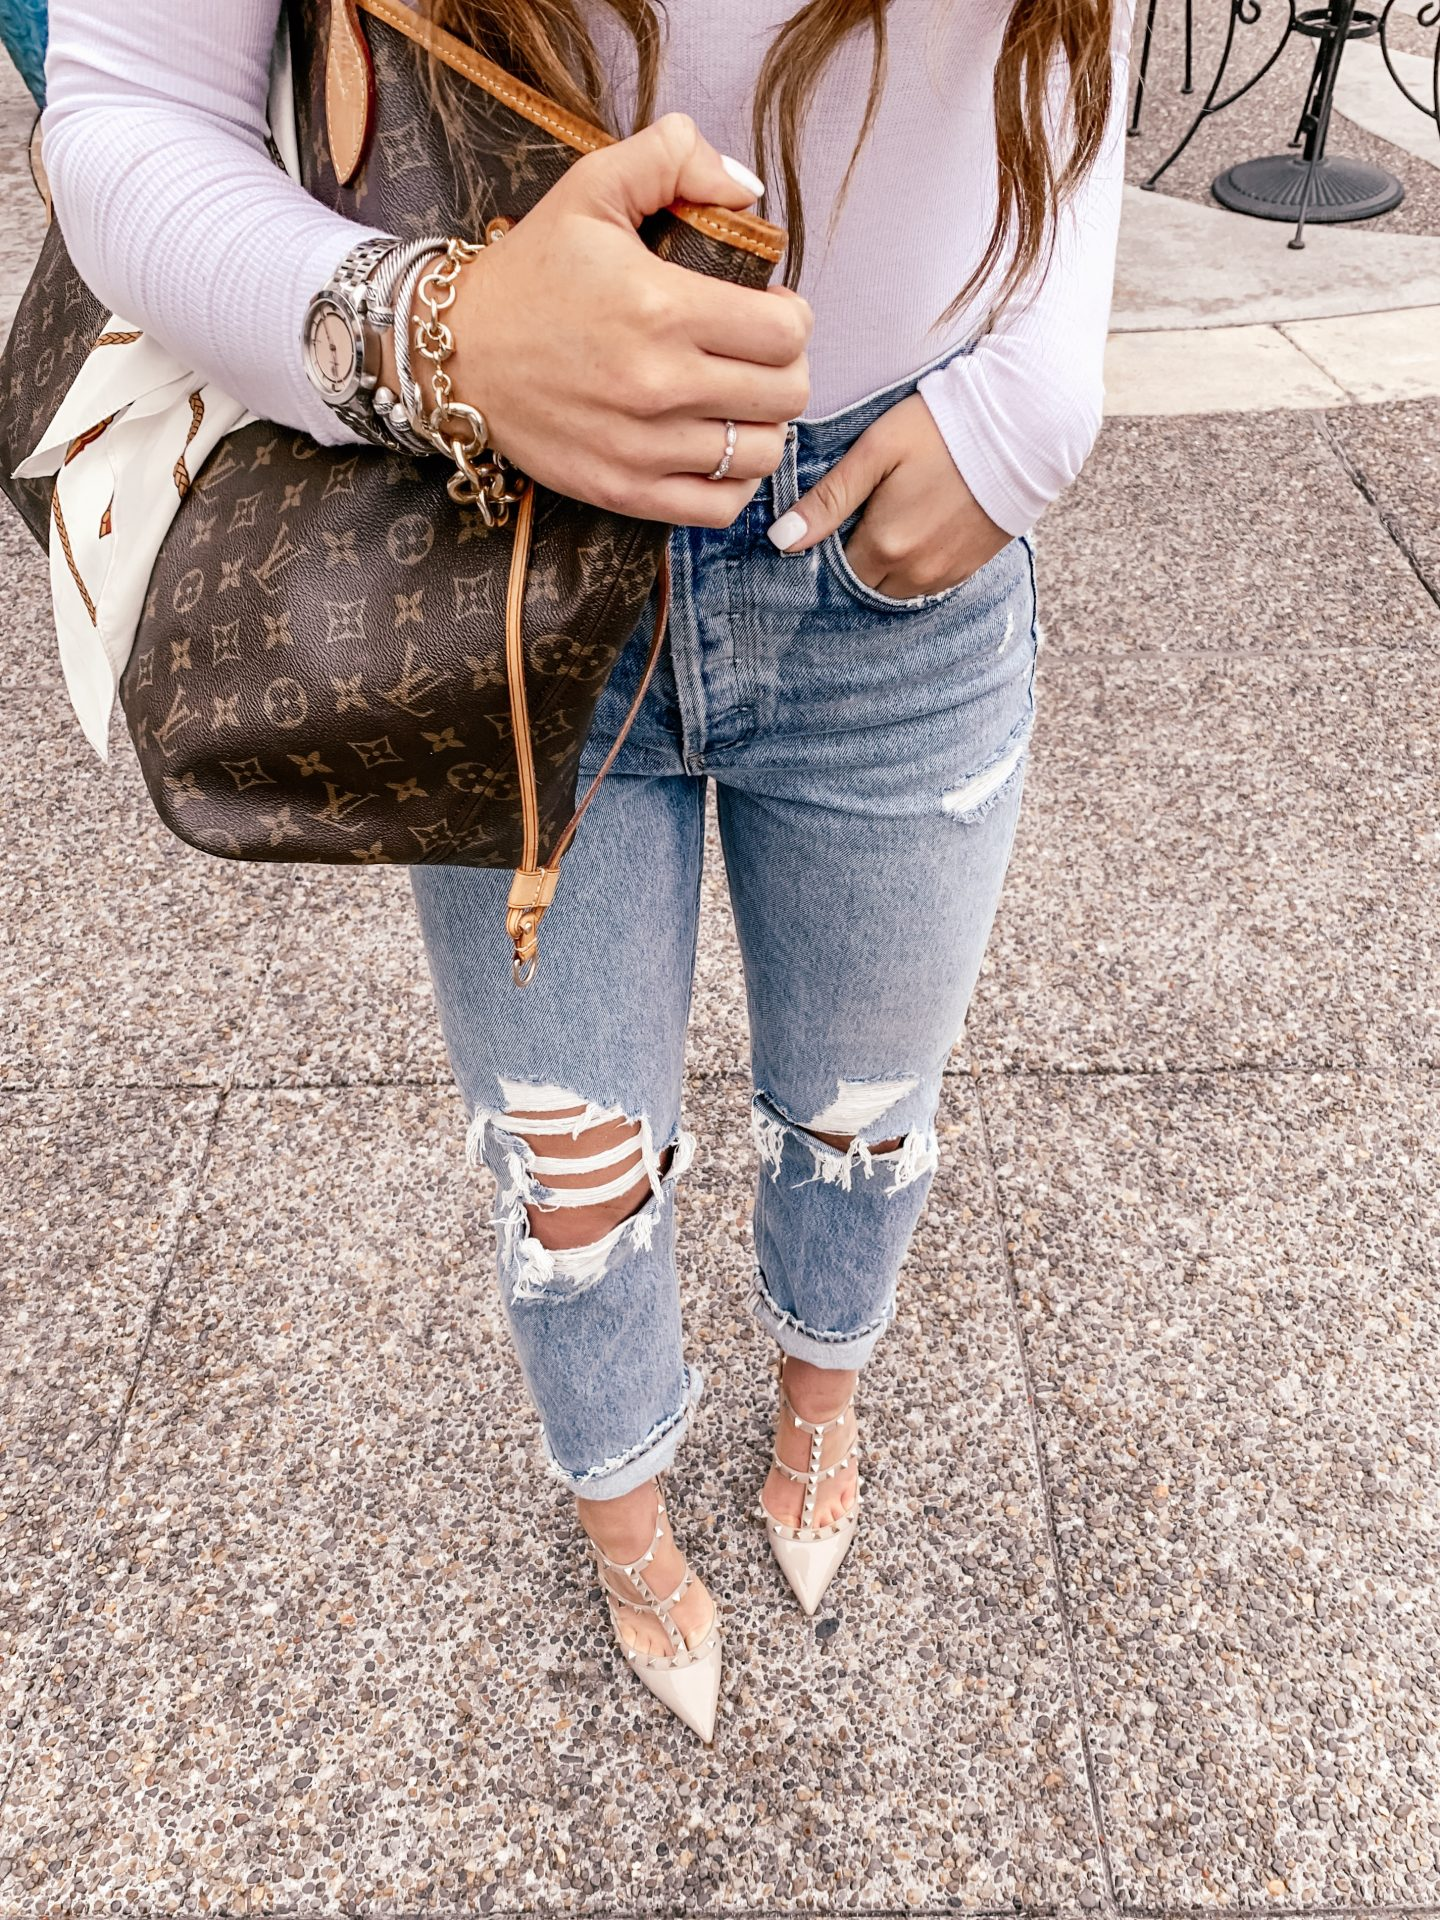 Everyday Outfit The Best Boyfriend Jeans Topknots And Pearls